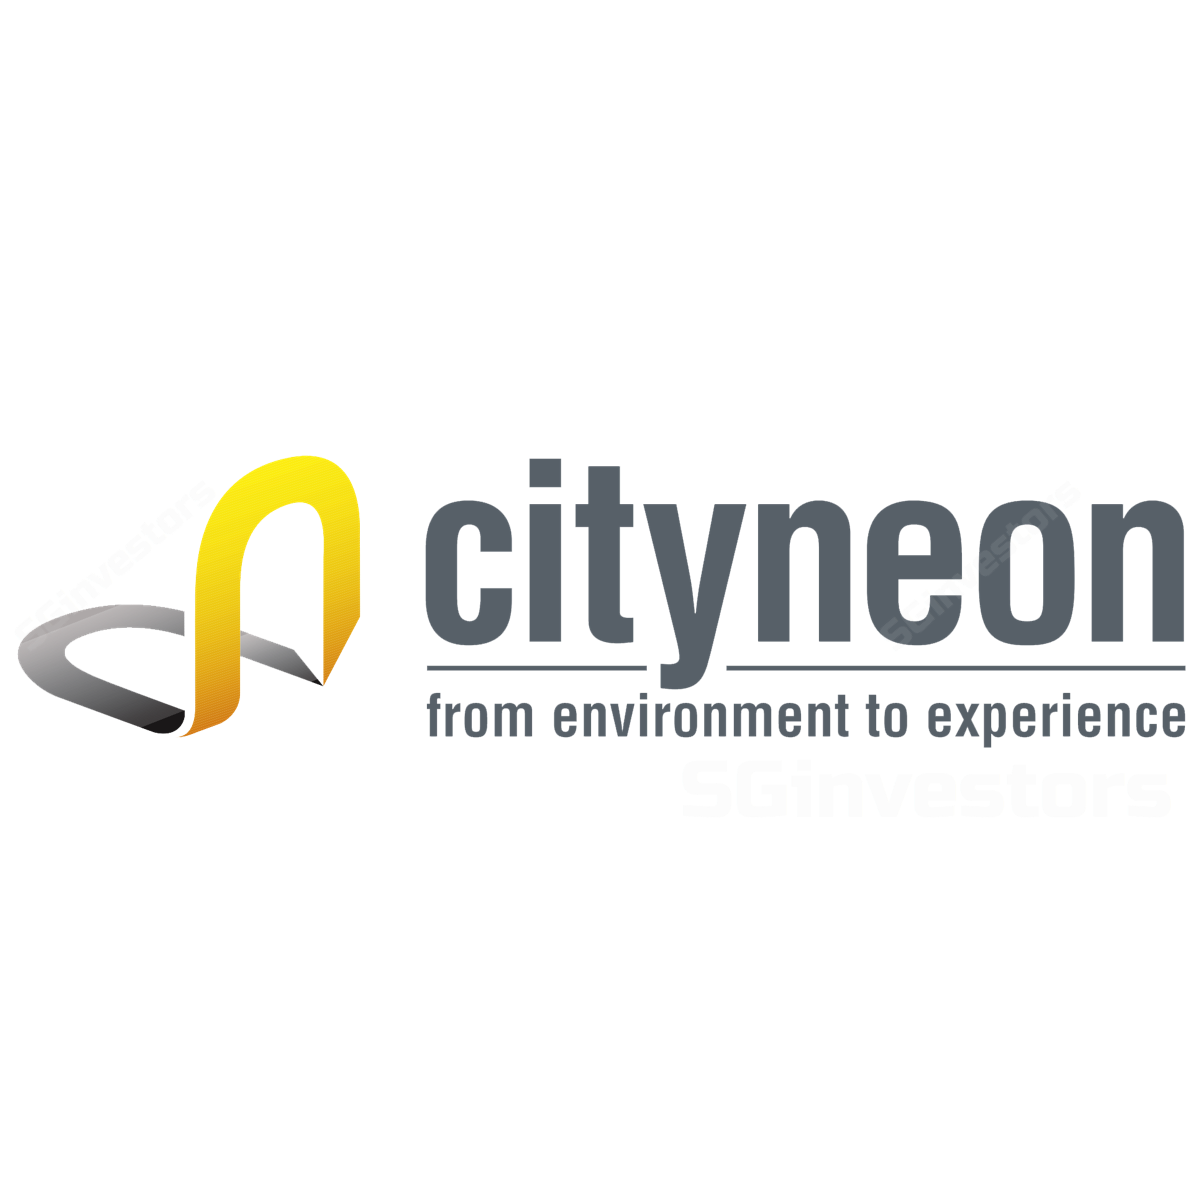 Cityneon Holdings - CIMB Research 2017-05-31: Avengers Arrive For China Premiere